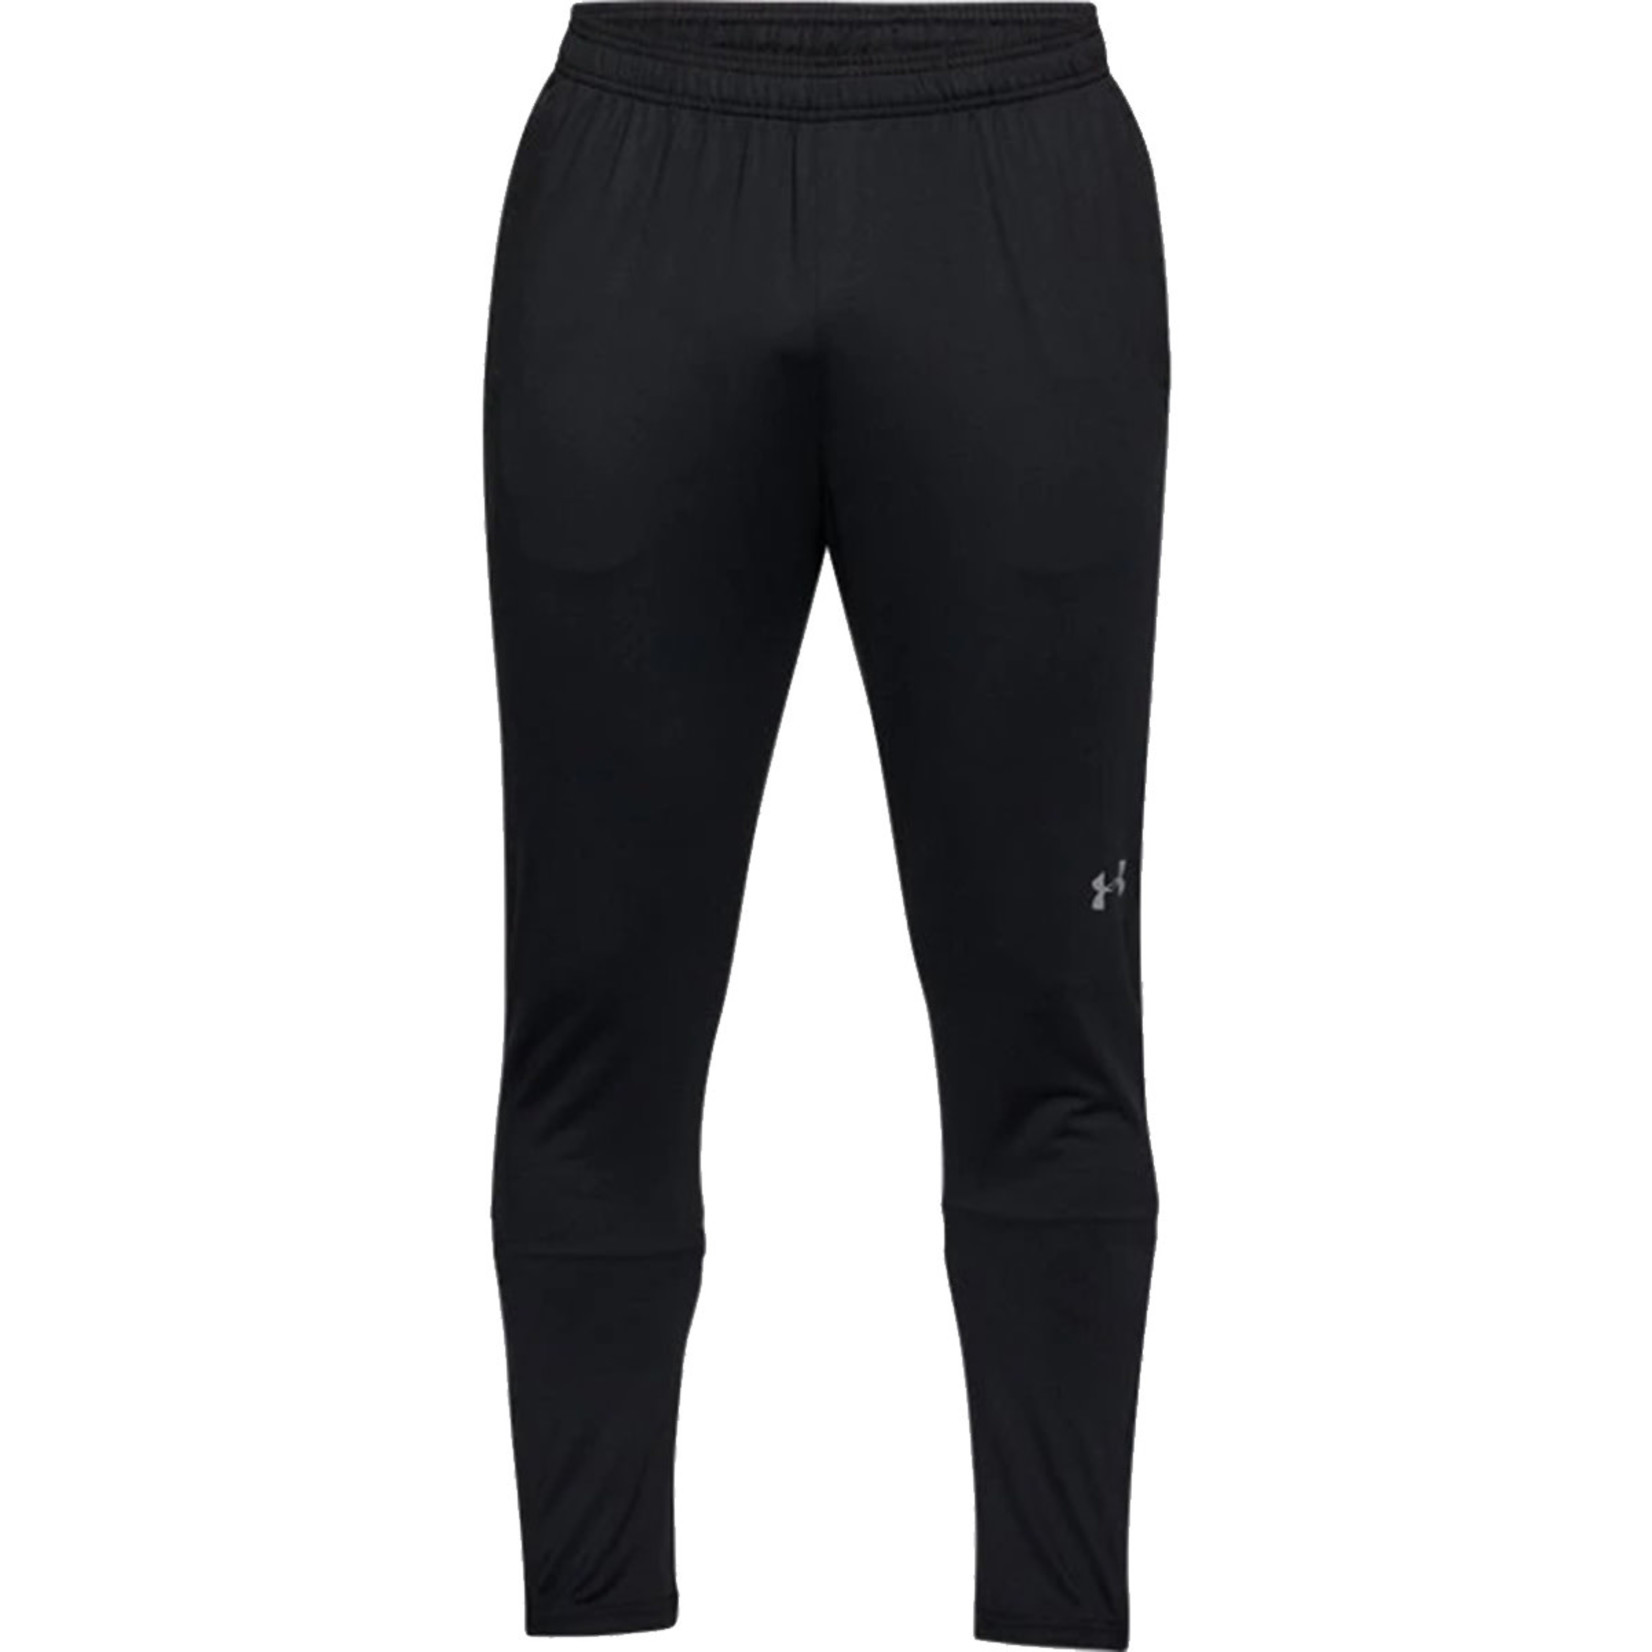 UNDER ARMOUR CHALLENGER II PANTS YOUTH